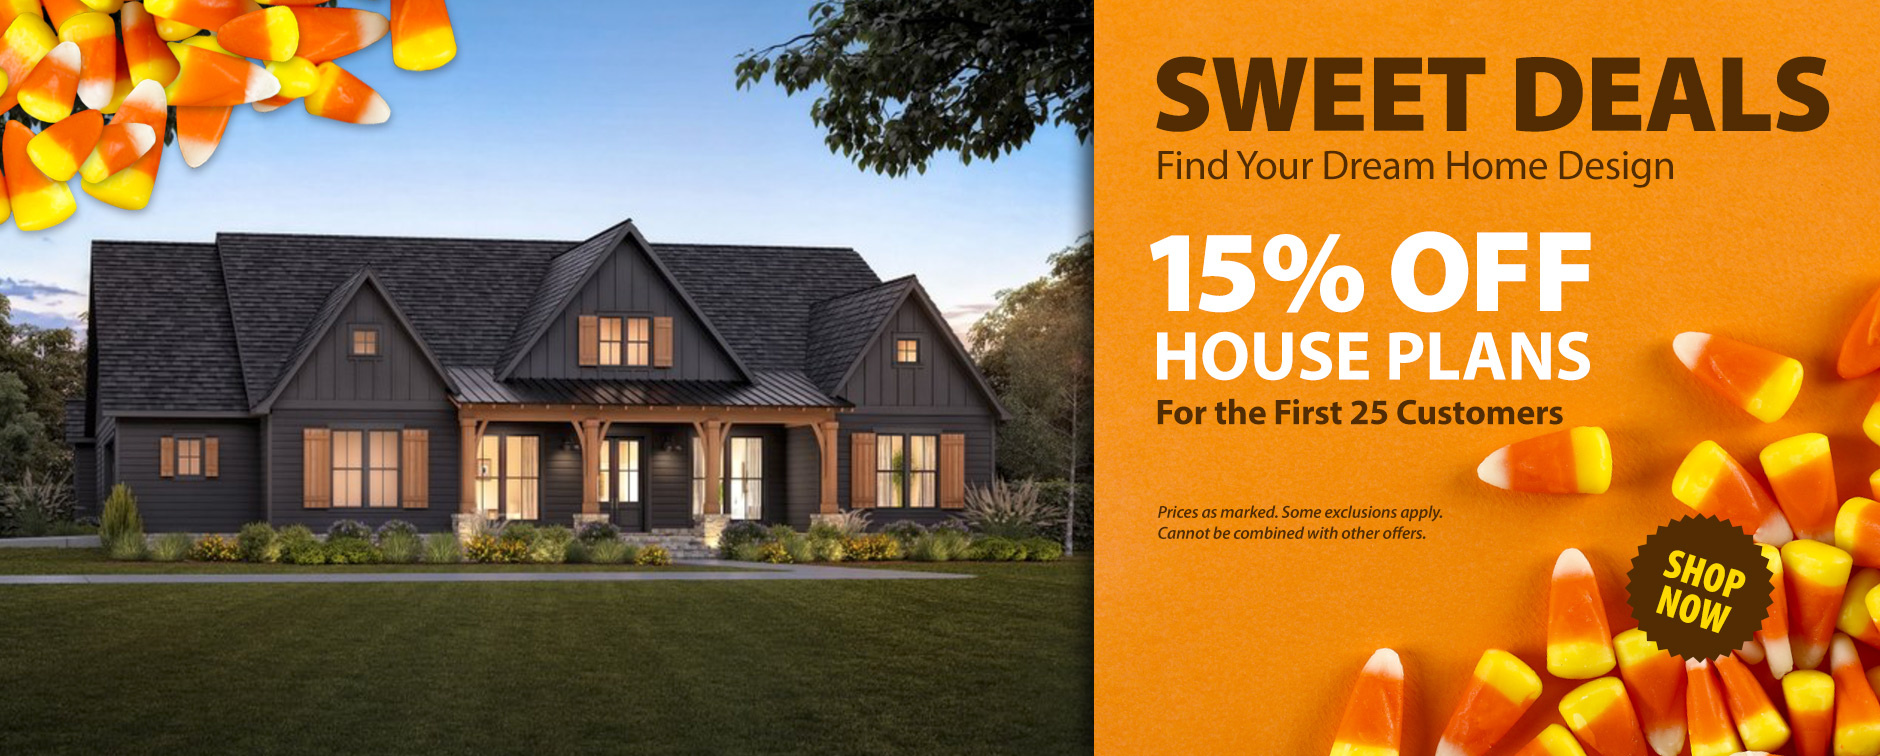 House Plans Sale 15% Off Layouts for the First 25 Customers